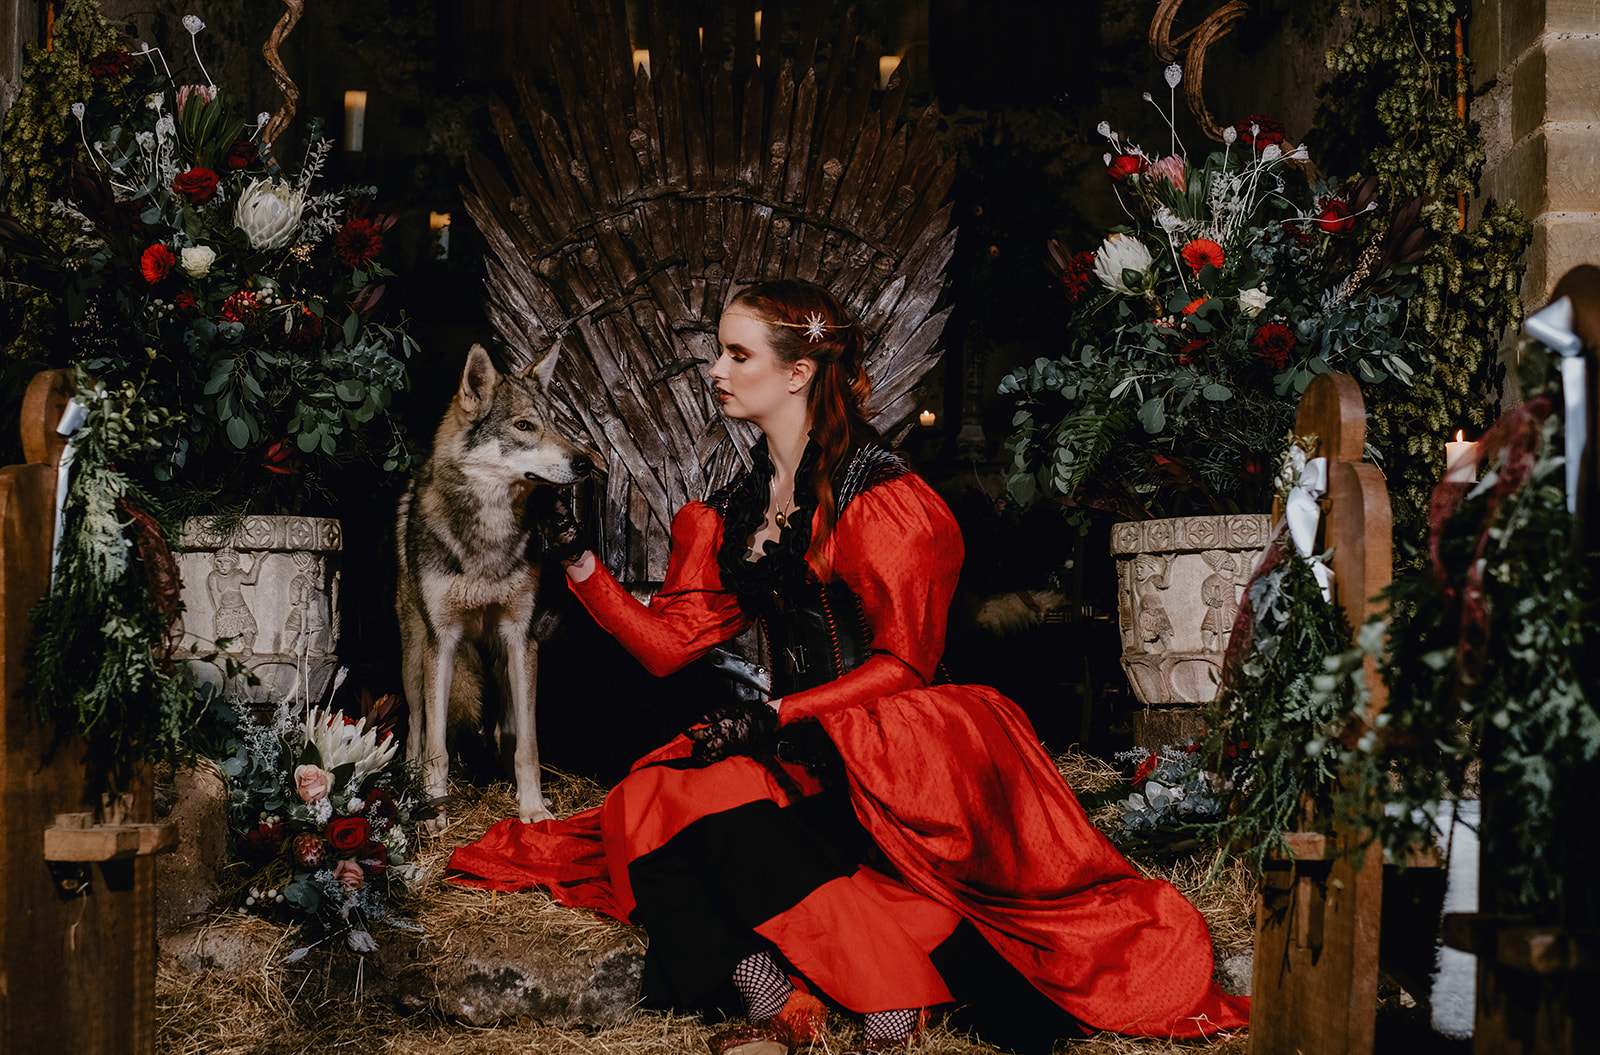 Game Of Thrones Wedding- Tom Jeavons Photography- Unconventional Wedding- Fantasy Wedding- Themed Wedding- red wedding dress- quirky wedding dress